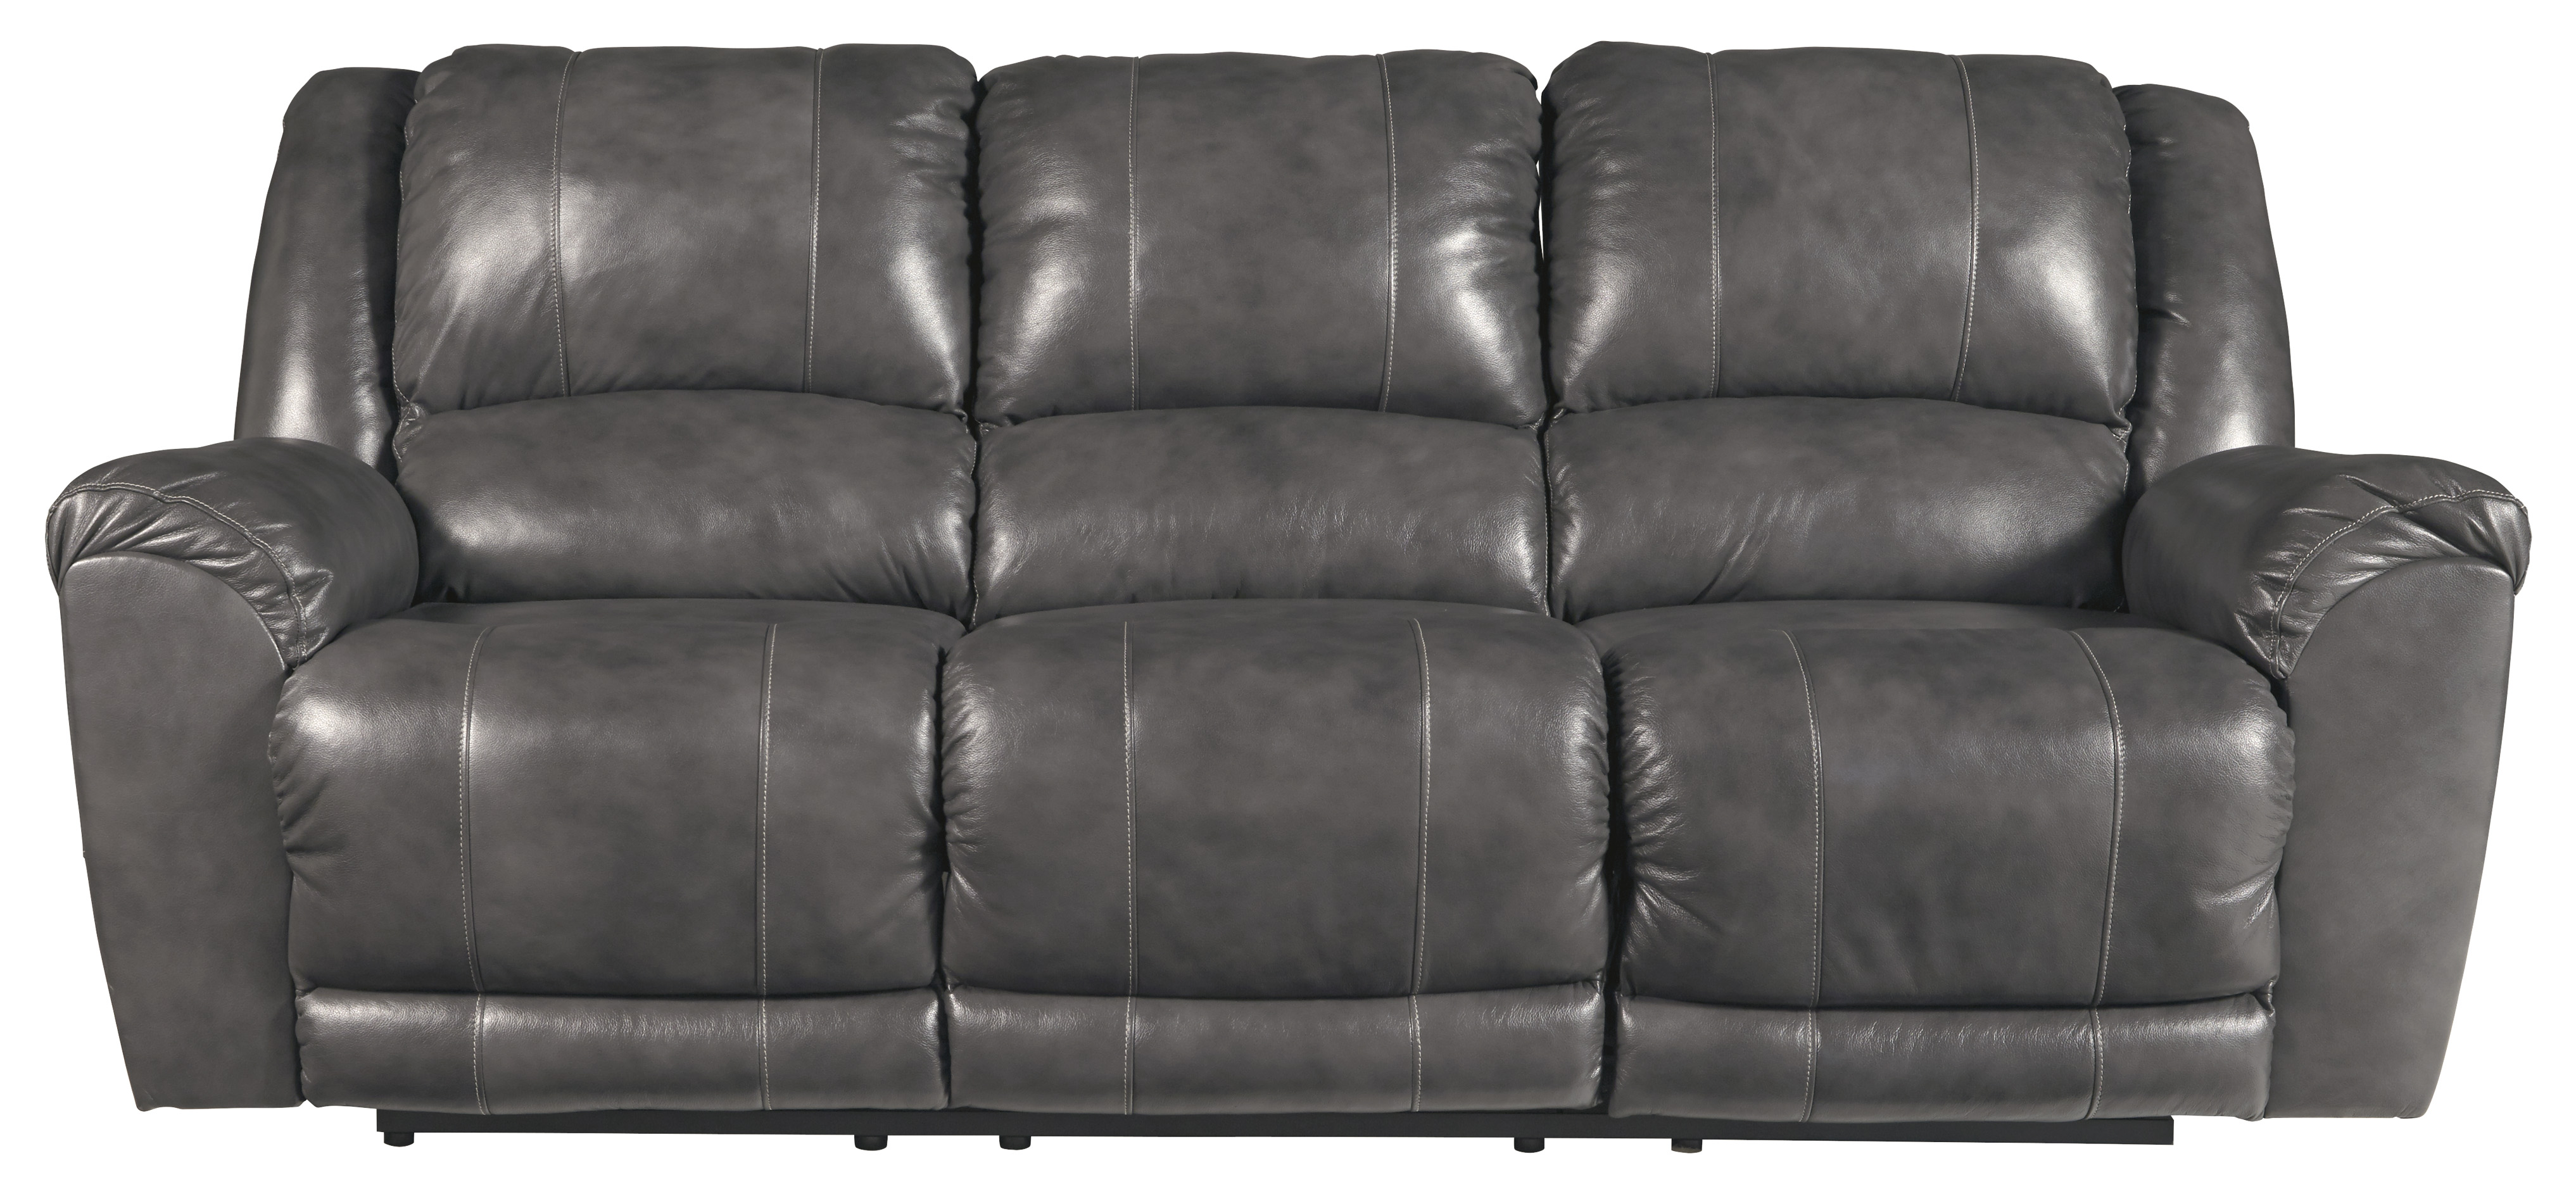 Terrific This Is It Furniture Persiphone Charcoal Power Reclining Sofa Ncnpc Chair Design For Home Ncnpcorg